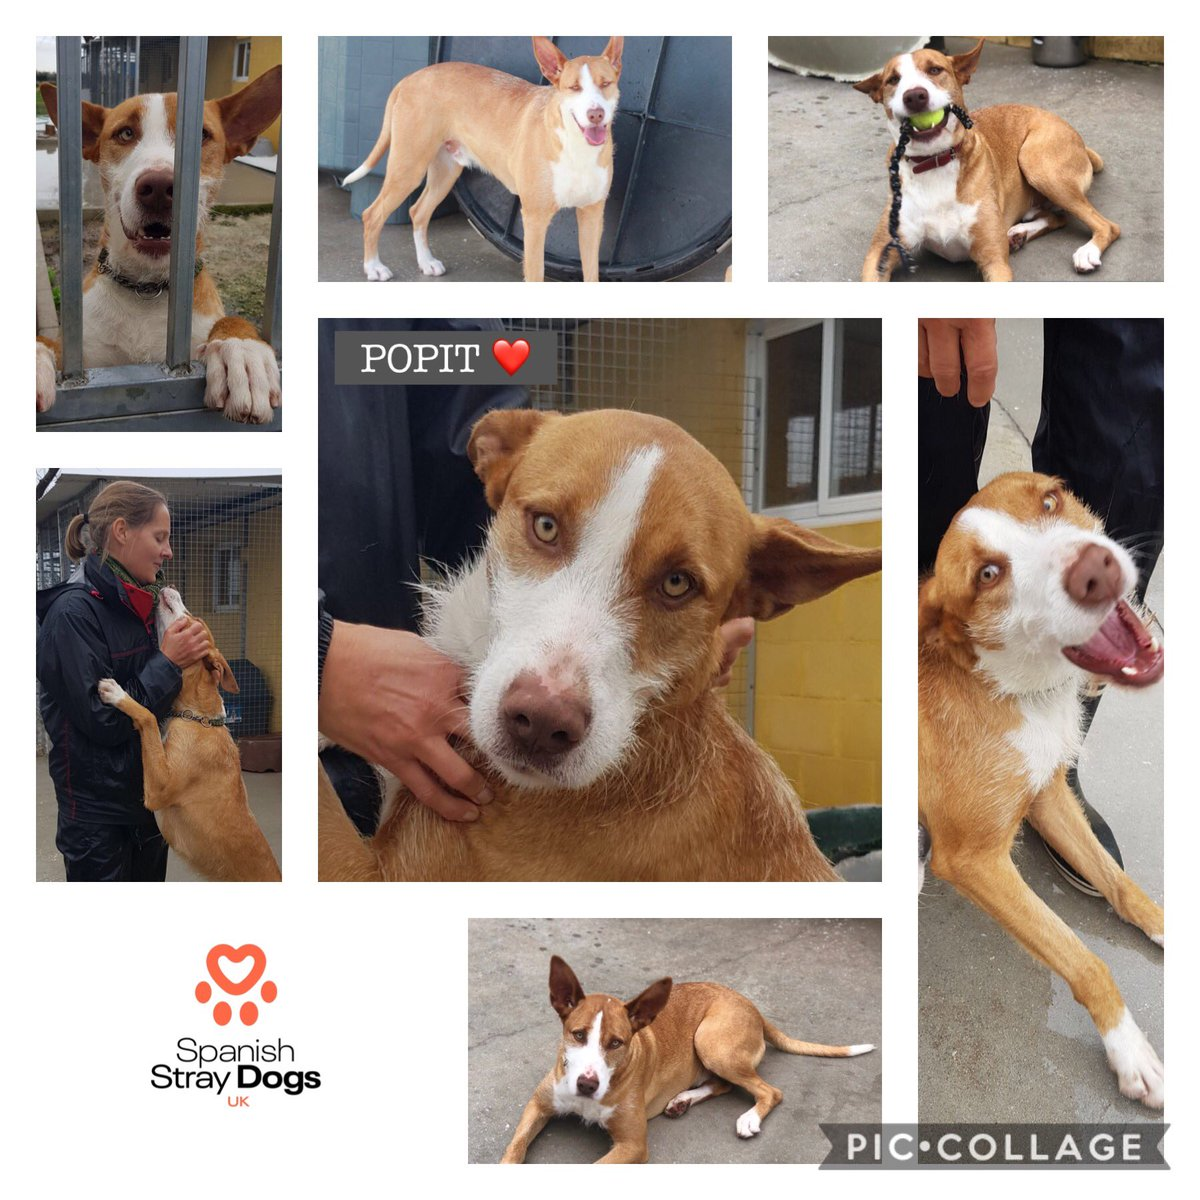 POPIT – Arrived June 2017  Needs experienced owner, cannot be homed with small animals, incl. small dogs. Likes medium/large dogs. Affectionate, love to cuddle on a sofa with best human friend.  https://t.co/Zv0suV7HWV  Adoptions@spanishstraydogs.org  #ForgottenSoulsHour #Podenco https://t.co/pez4ATUHYv